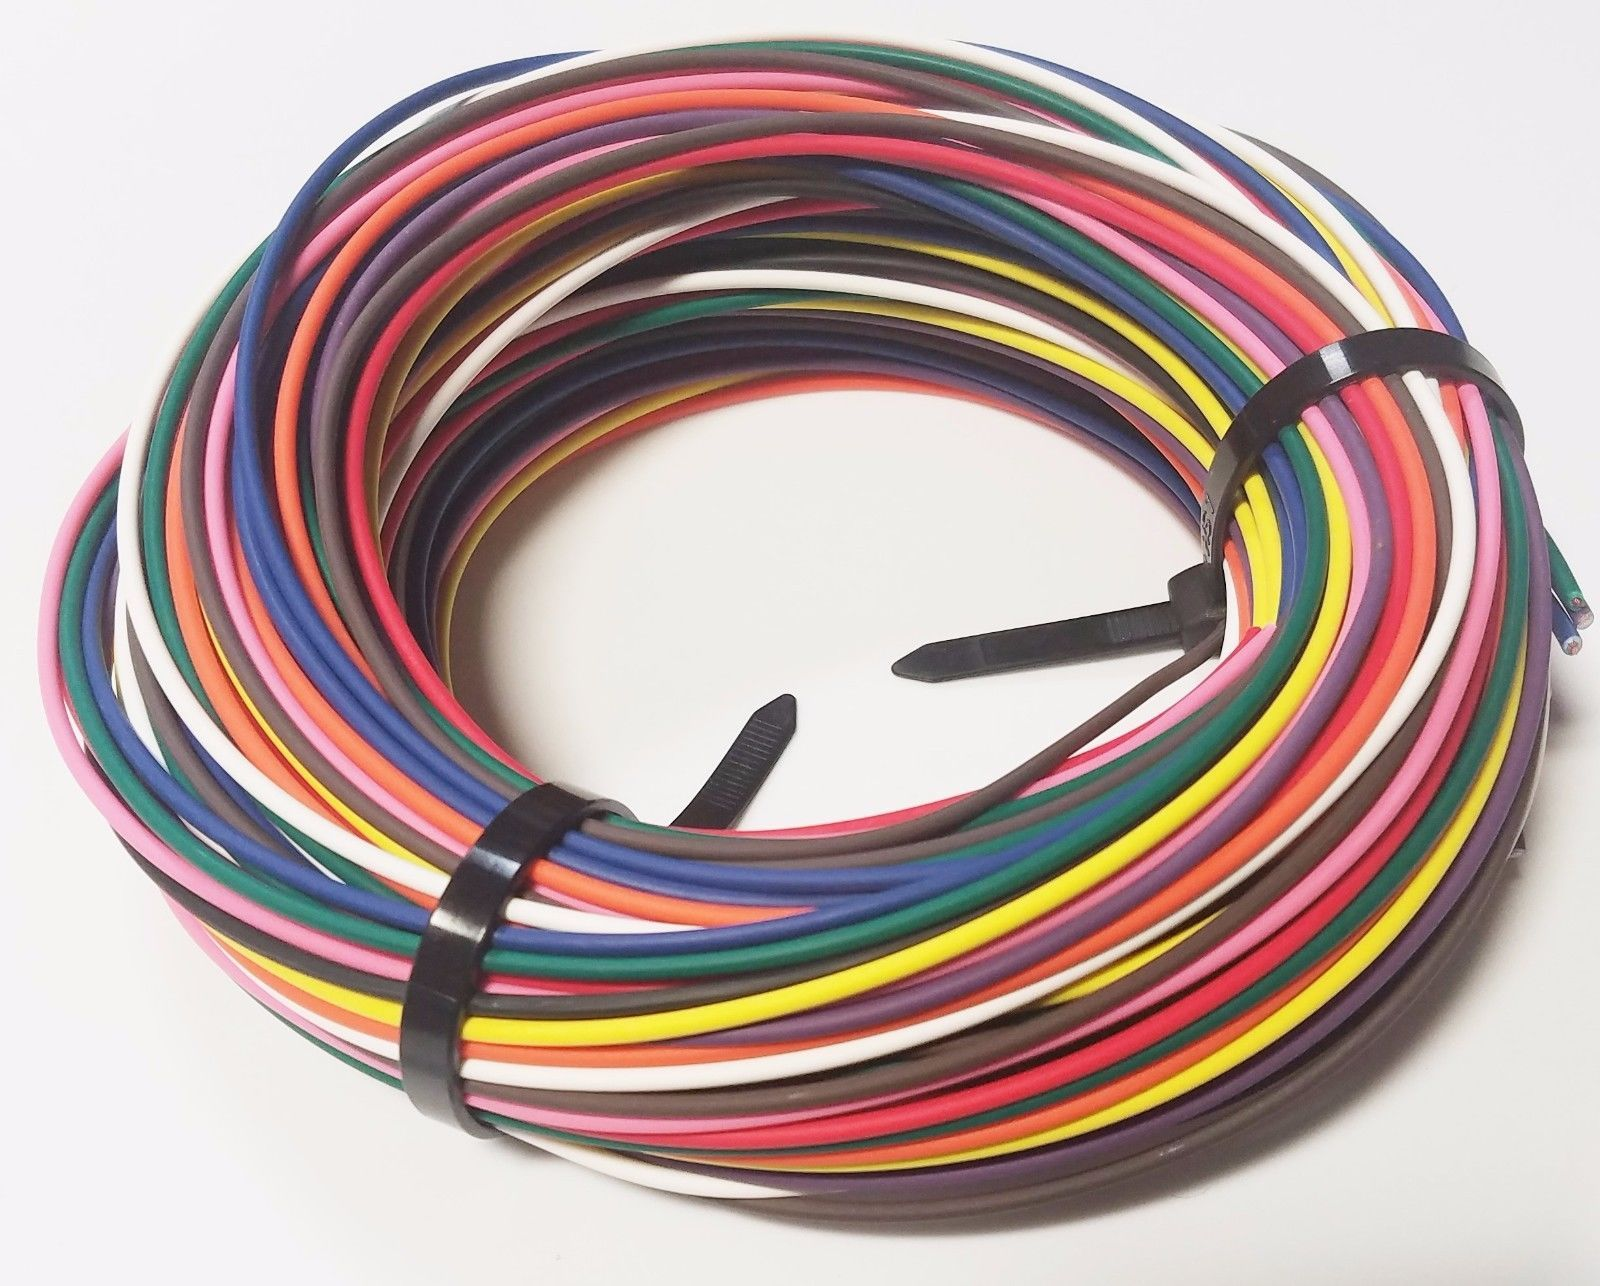 Automotive wire gauge current chart on q rj45 wiring diagram power and speaker wire automotive wire 16 gauge ga high temp 721aff53892f176f0679c65f511a5820 626422629390885894 automotive wire gauge current chart keyboard keysfo Choice Image